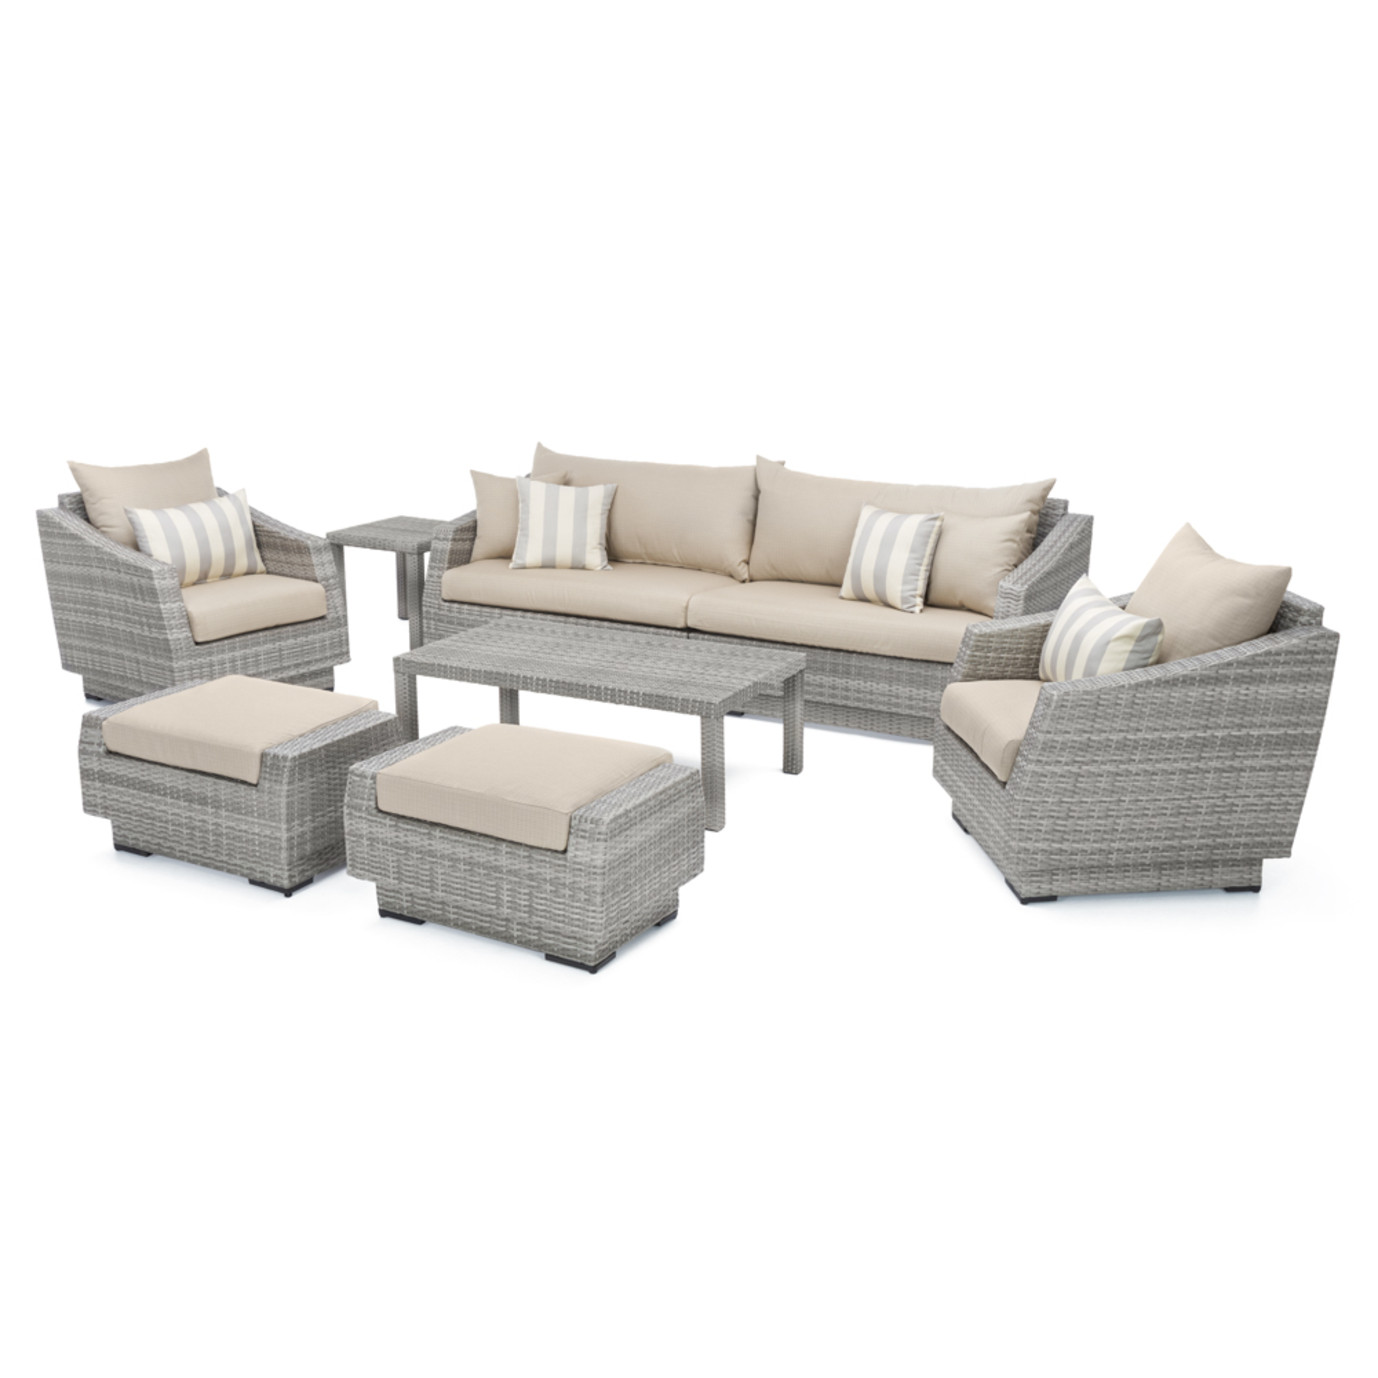 Cannes™ 8pc Sofa Set with Furniture Covers - Slate Grey